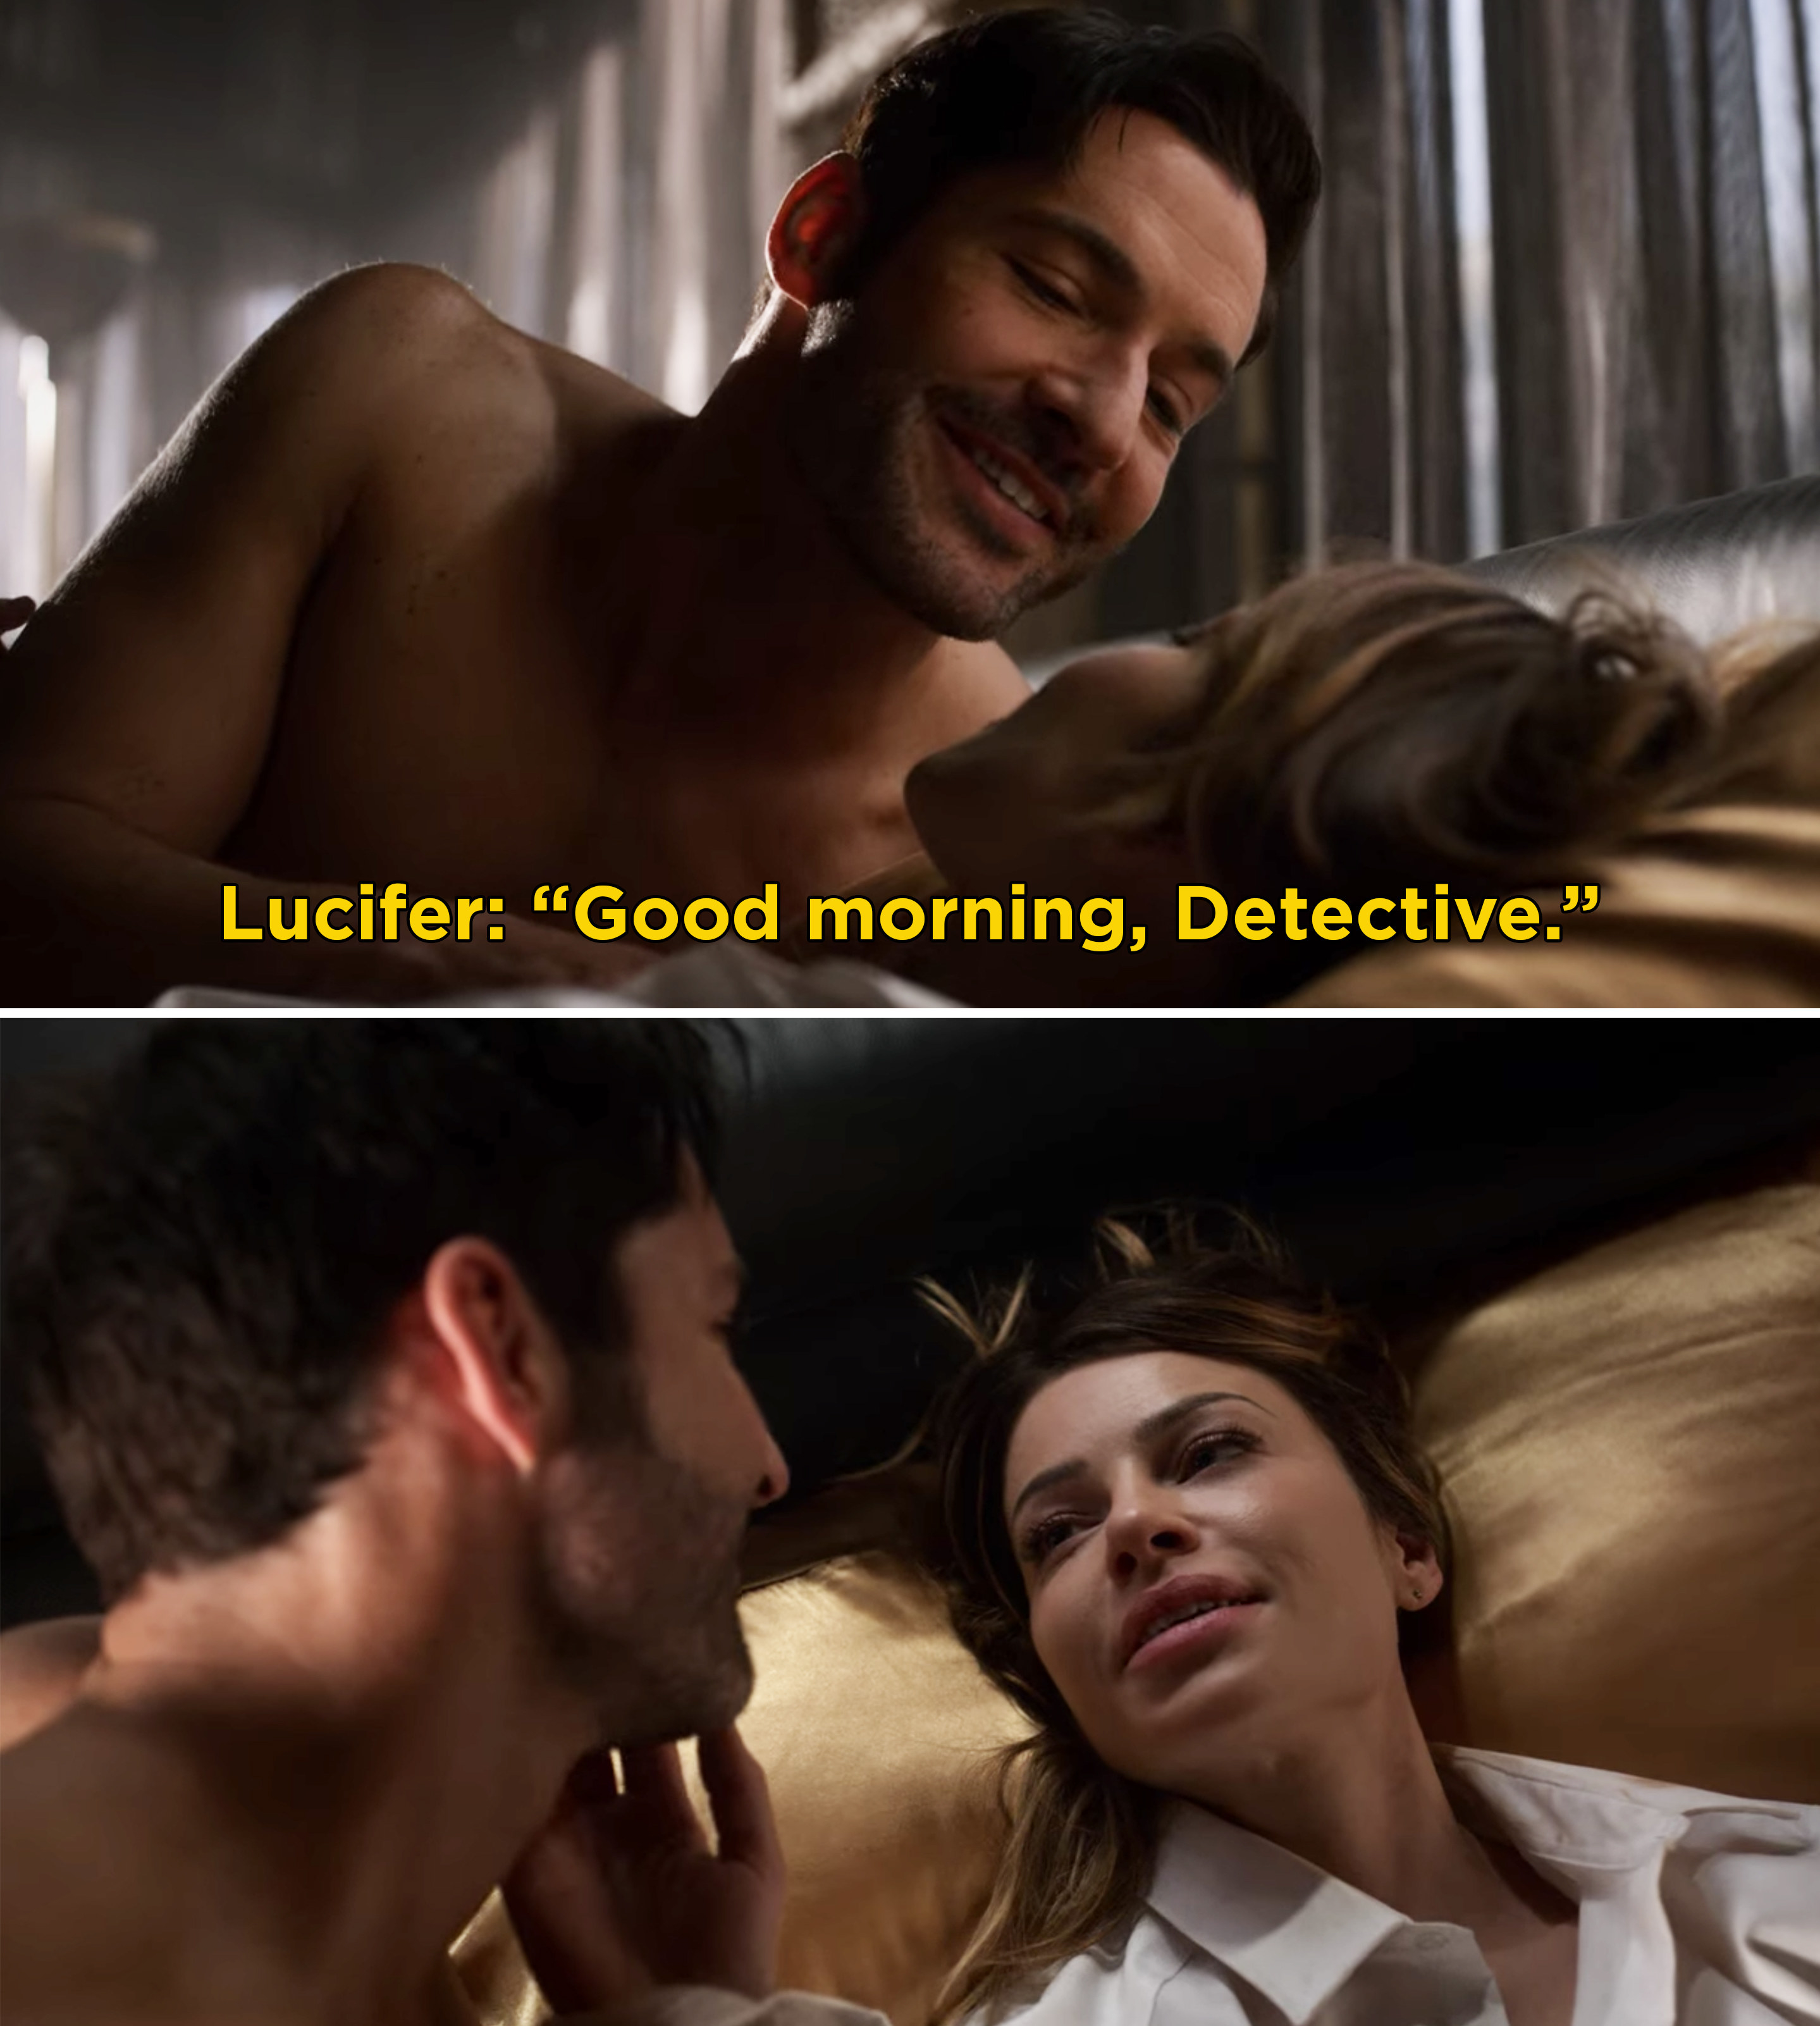 """Lucifer and Chloe in bed together and Lucifer saying, """"Good morning, Detective"""""""